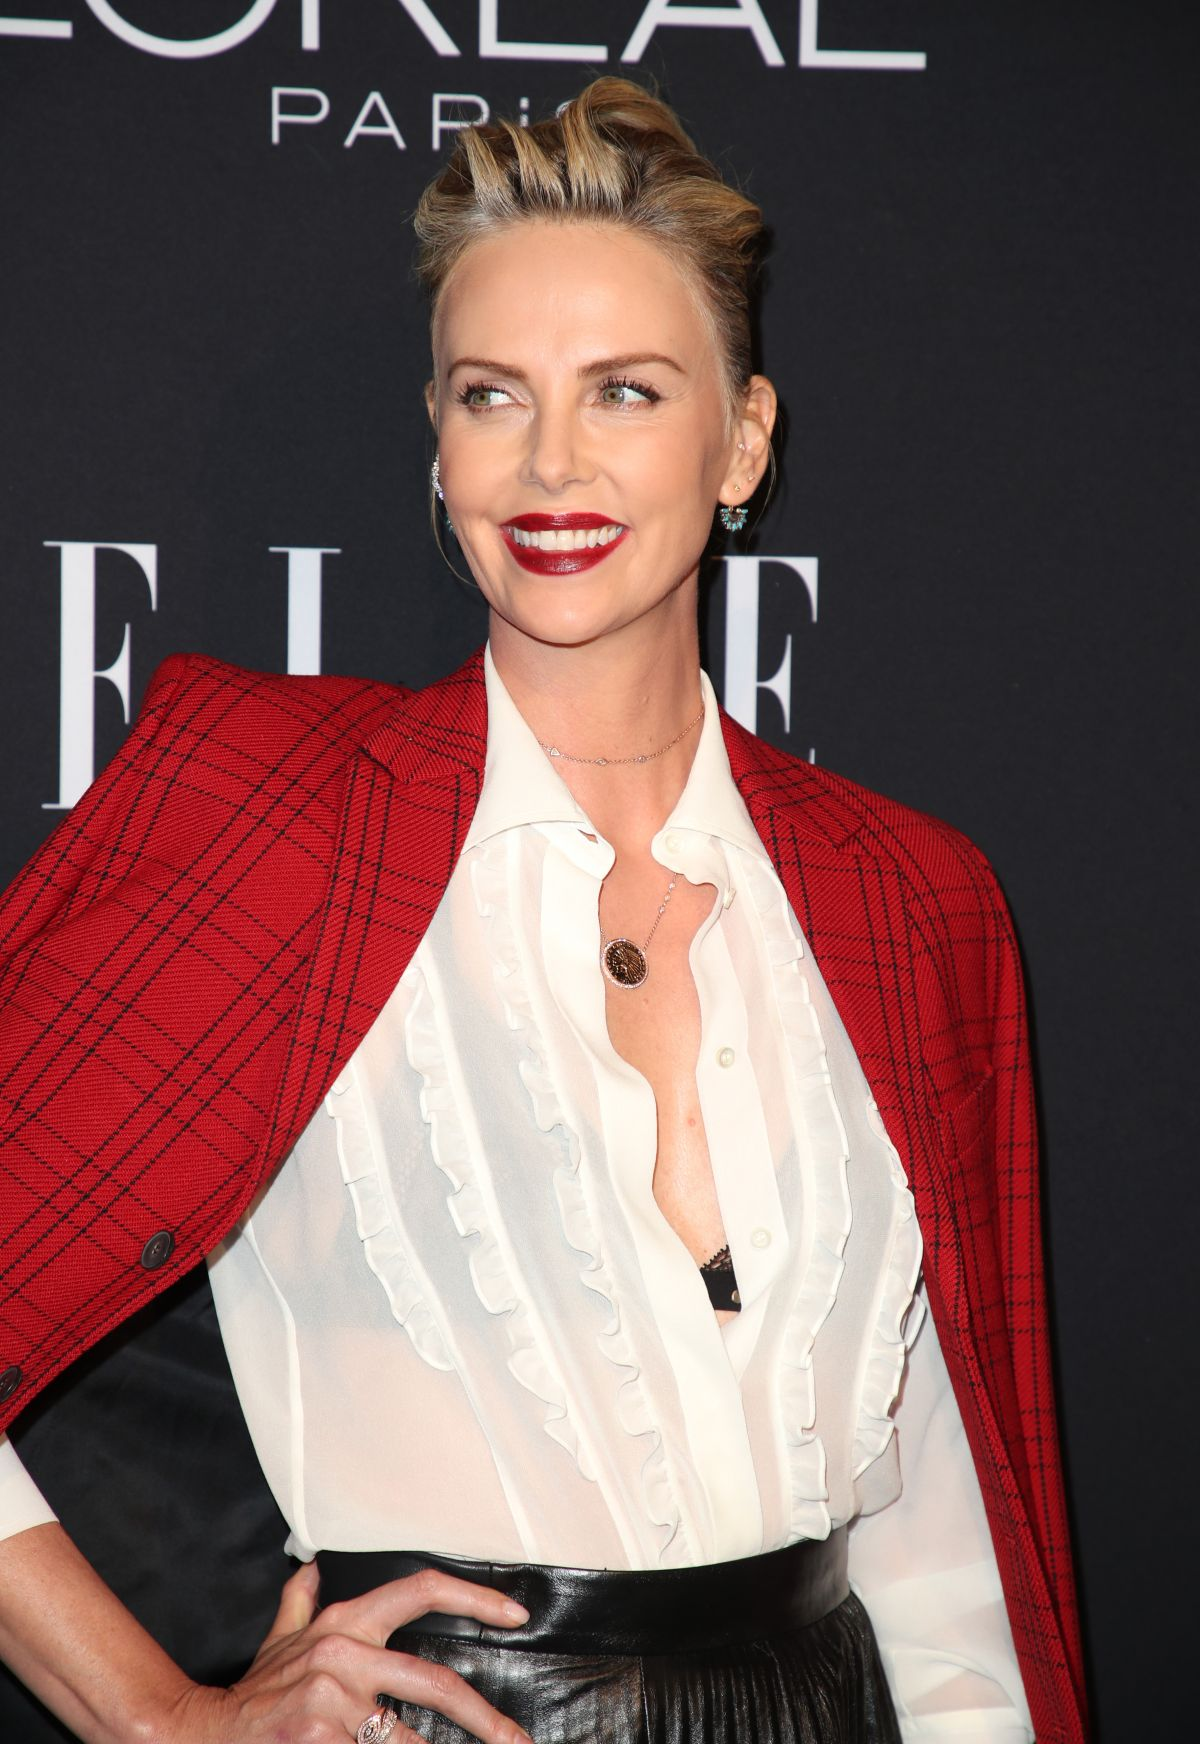 charlize-theron-at-elle-women-in-hollywood-in-los-angeles-10-15-2018-9.jpg